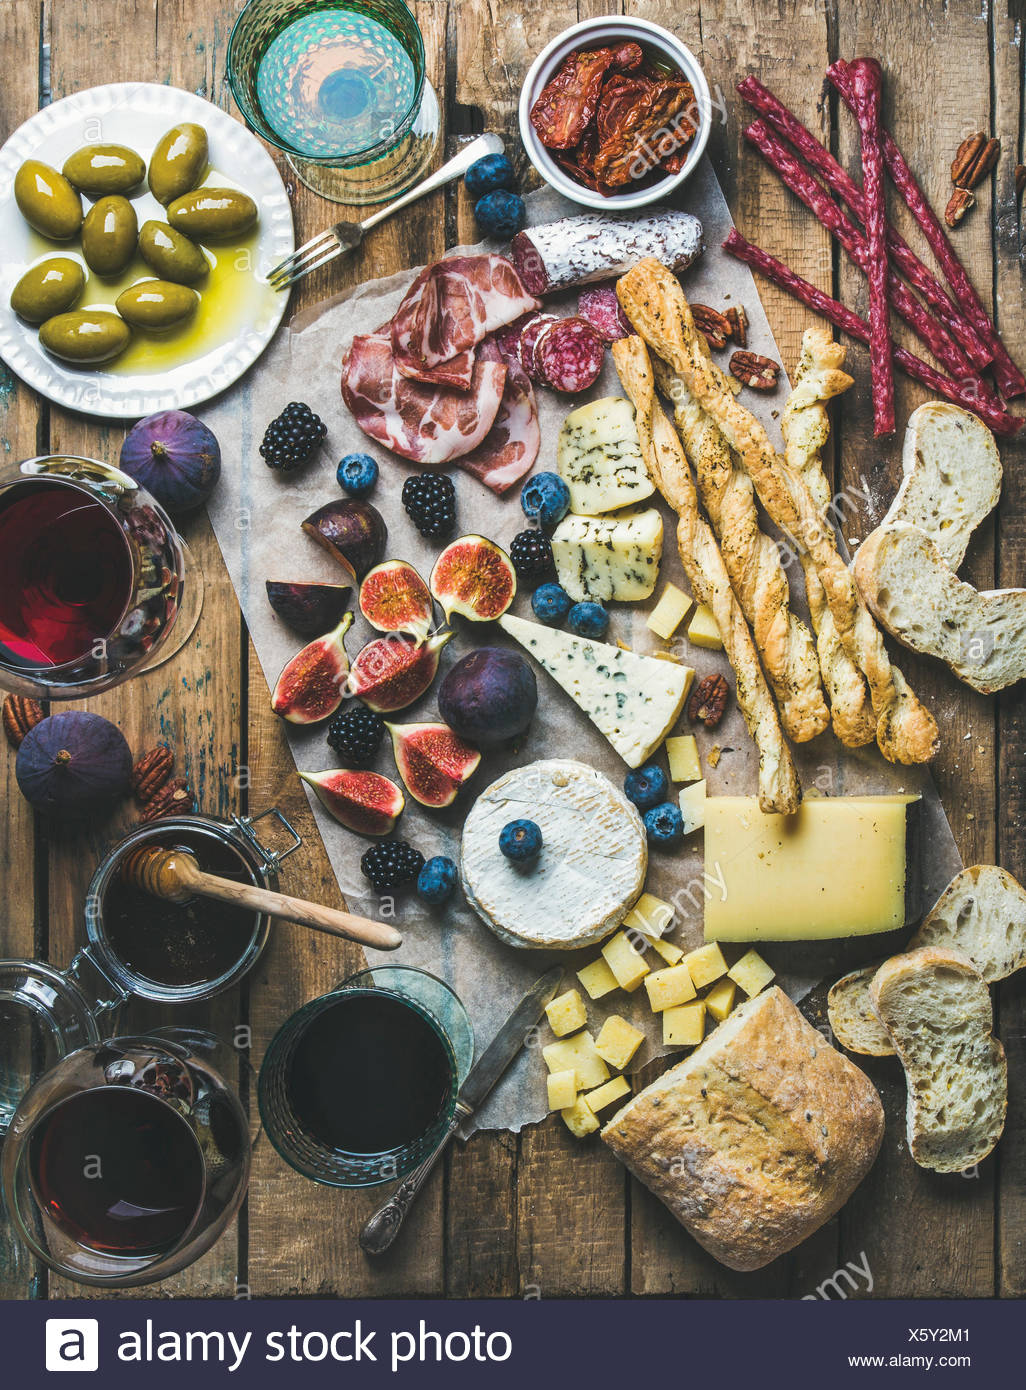 Wine and snack set with various wines in glasses, meat variety, bread, green olives, sun-dried tomatoes, figs, nuts and berries - Stock Image